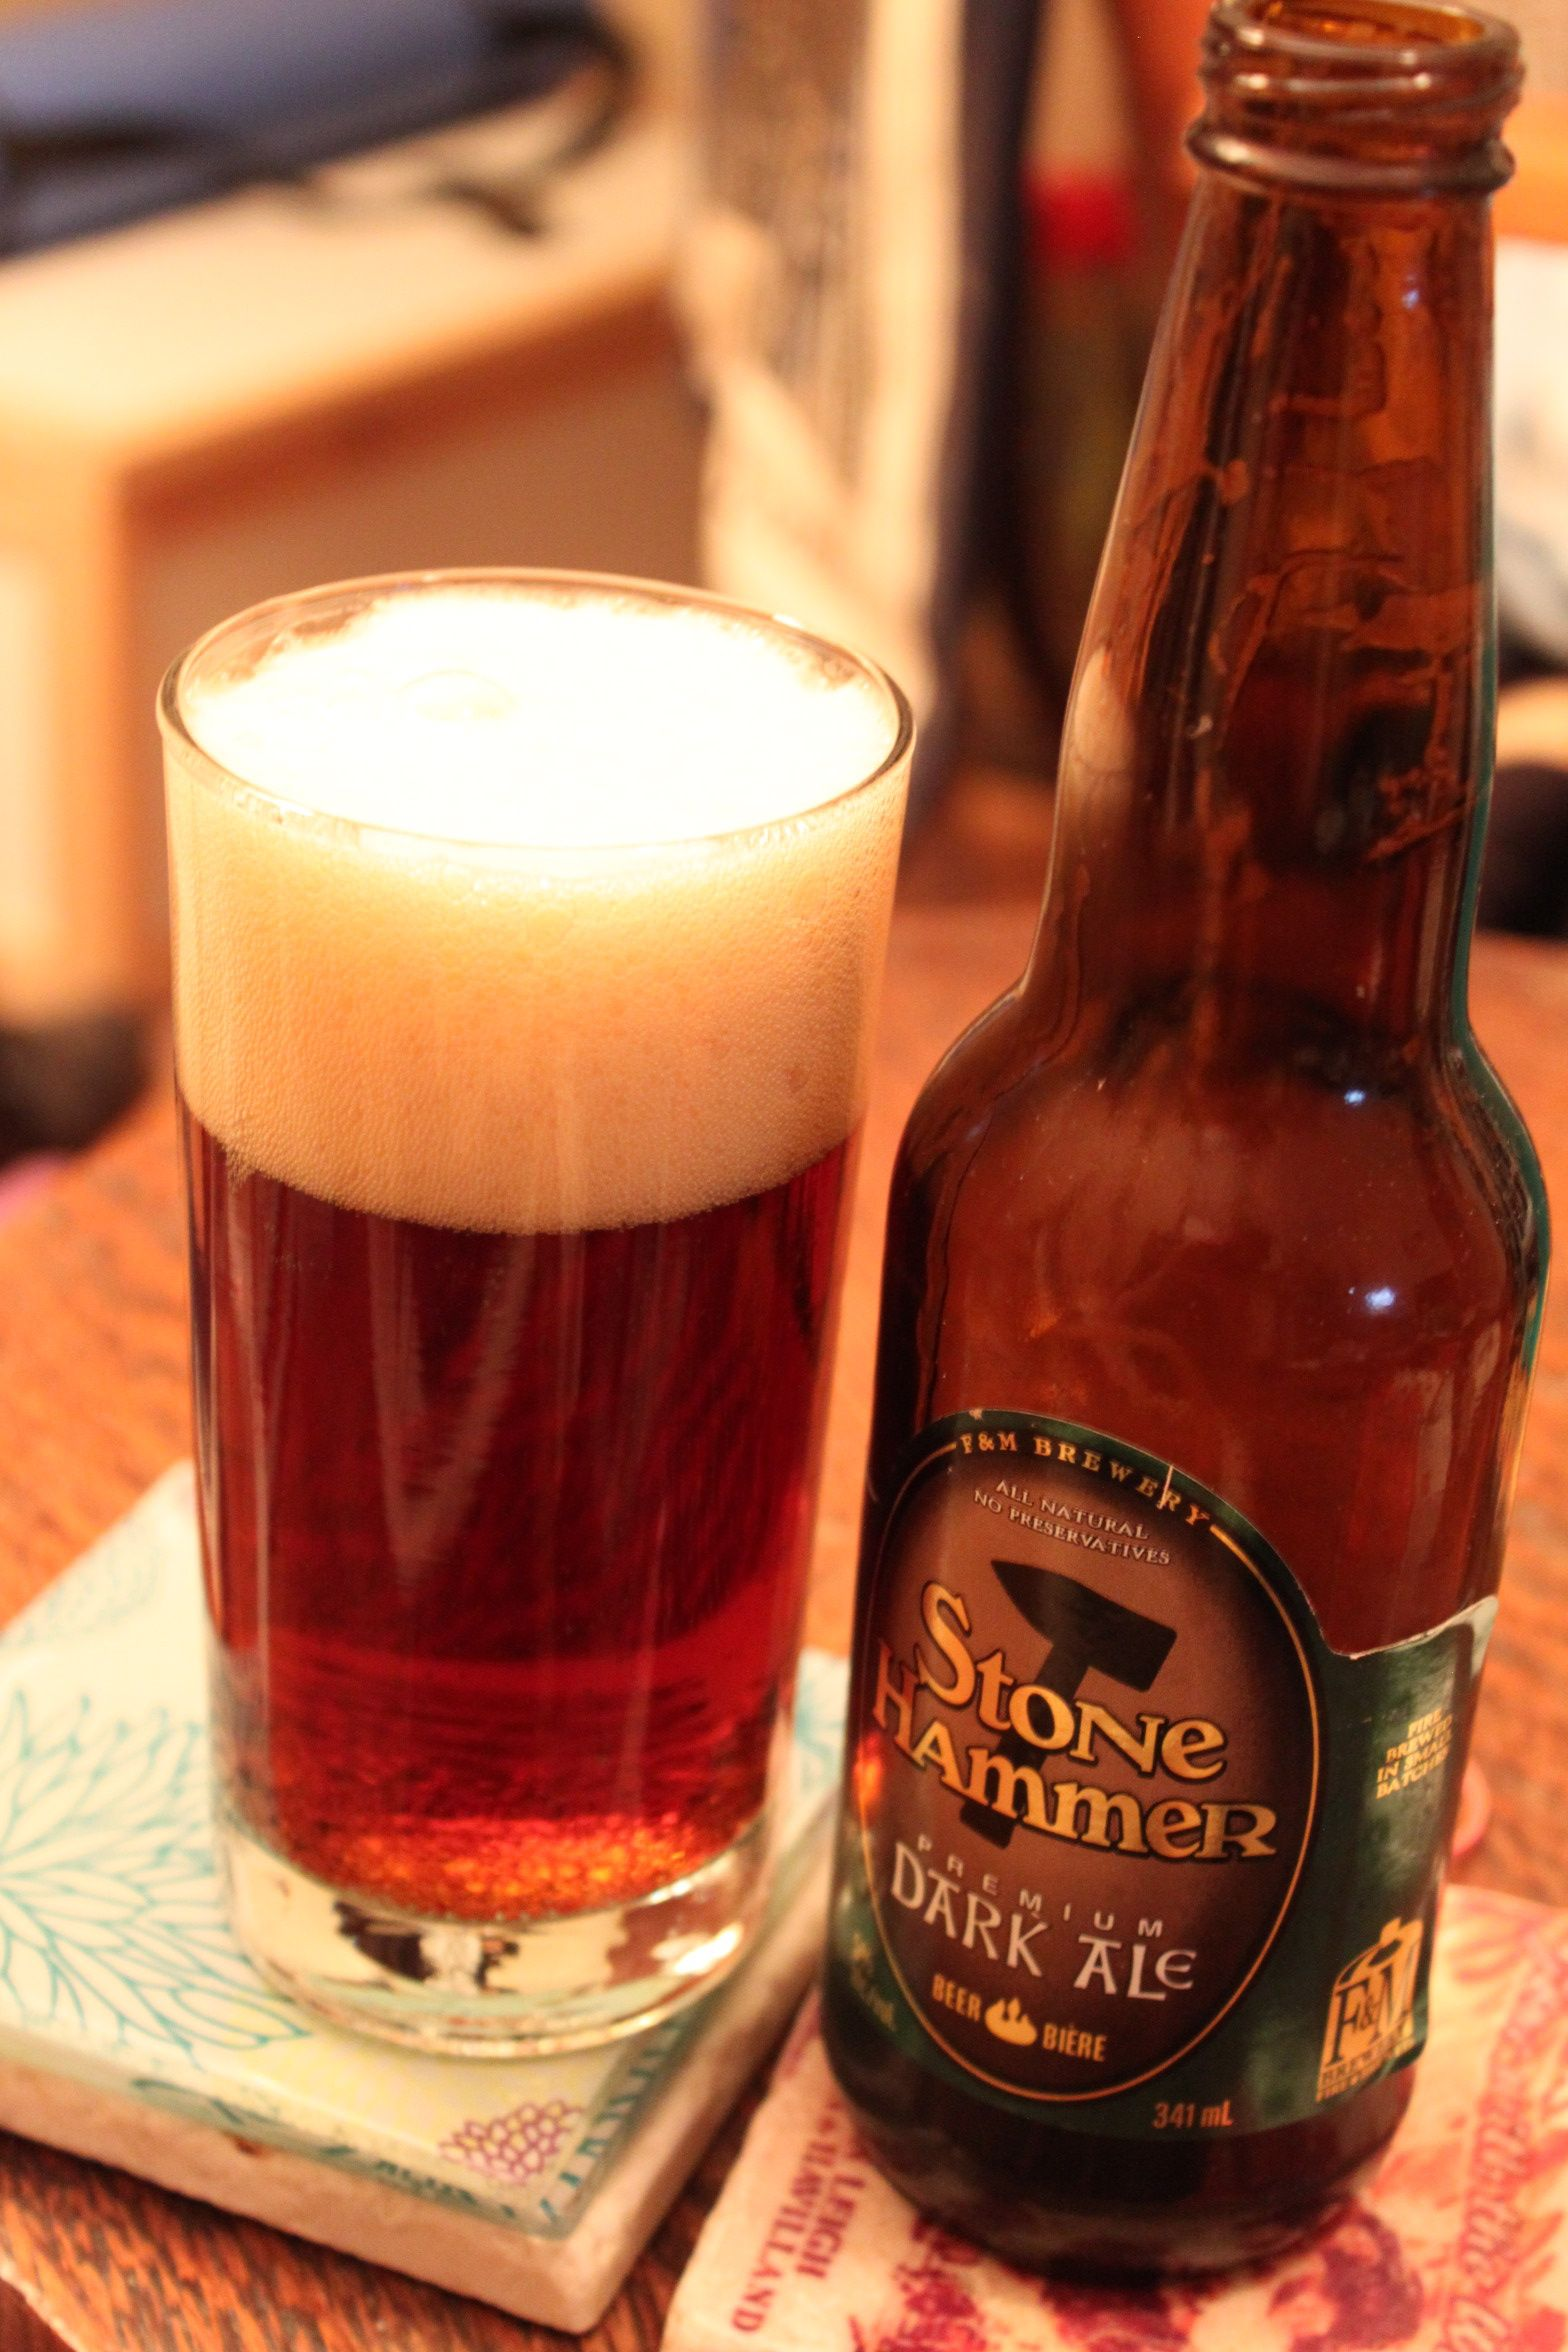 Stone Hammer Dark Ale Love My Canadians This One Has Hints Of Cocoa And Caramel Not Heavy But A Light Amber Ale Ontario Canada Ale Beer Porter Beer Ale